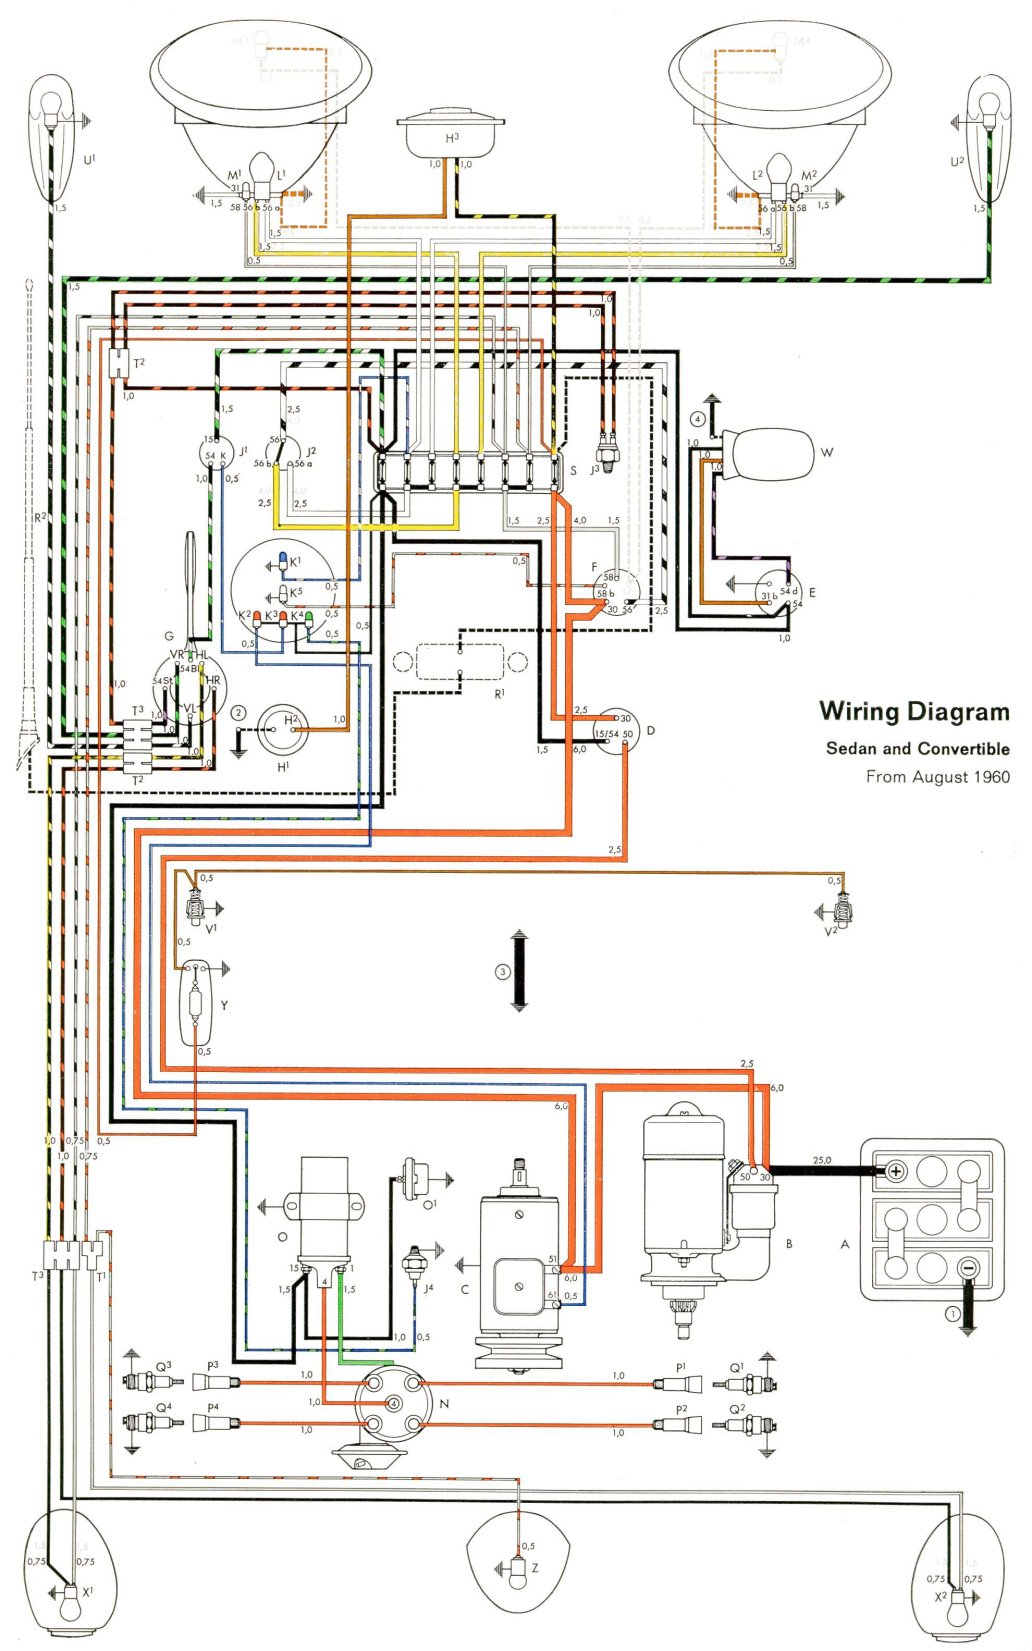 bug_61 1961 beetle wiring diagram thegoldenbug com 1973 vw wiring diagram at highcare.asia